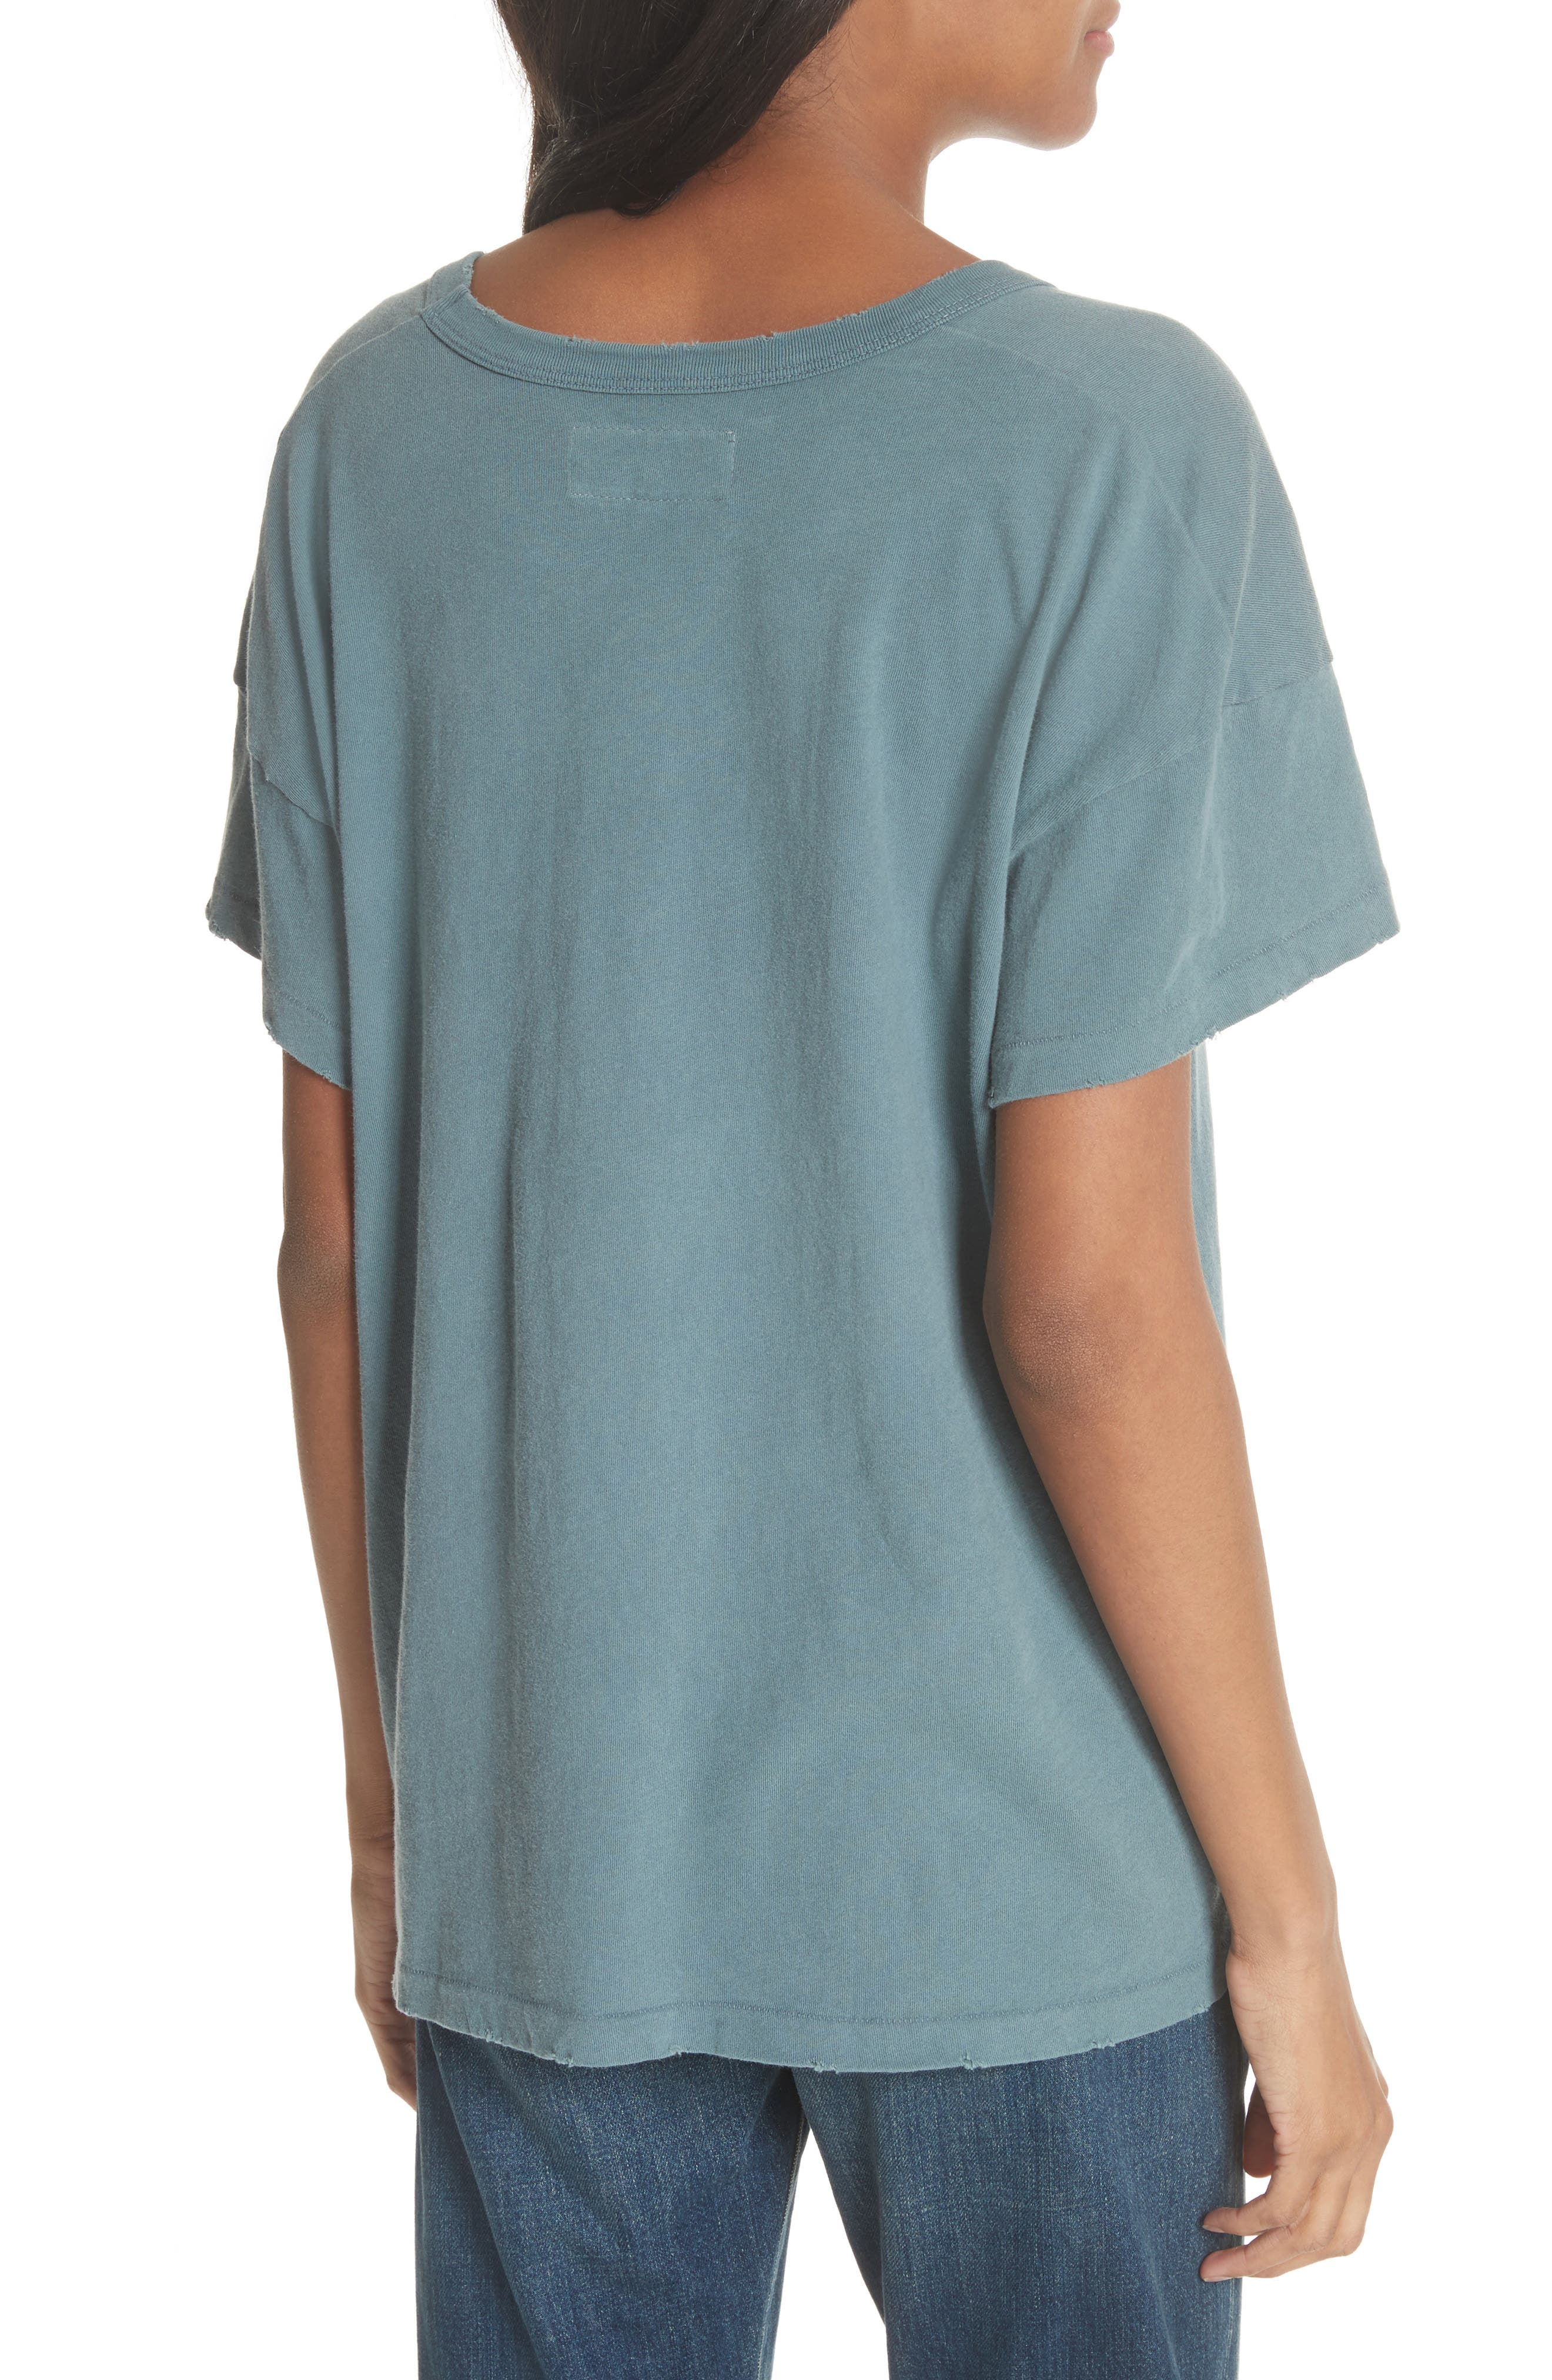 U-Neck Tee,                             Alternate thumbnail 2, color,                             MOTTLED BLUE